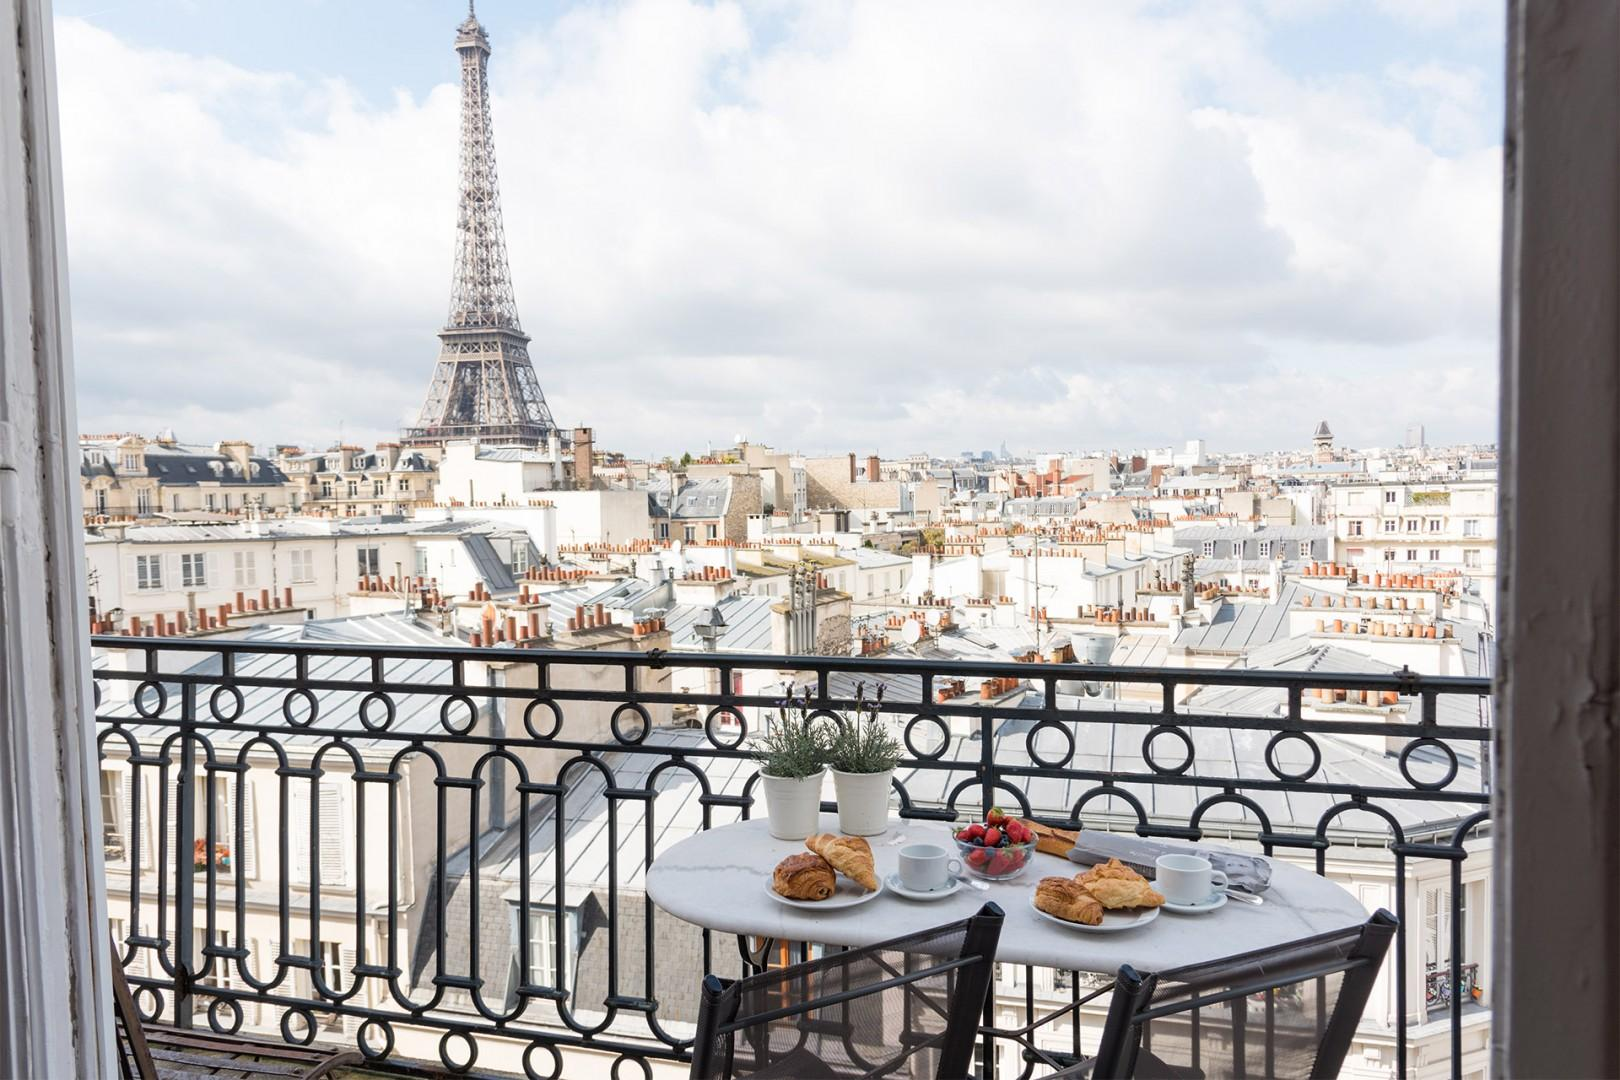 Step out onto your balcony and enjoy the breathtaking view!